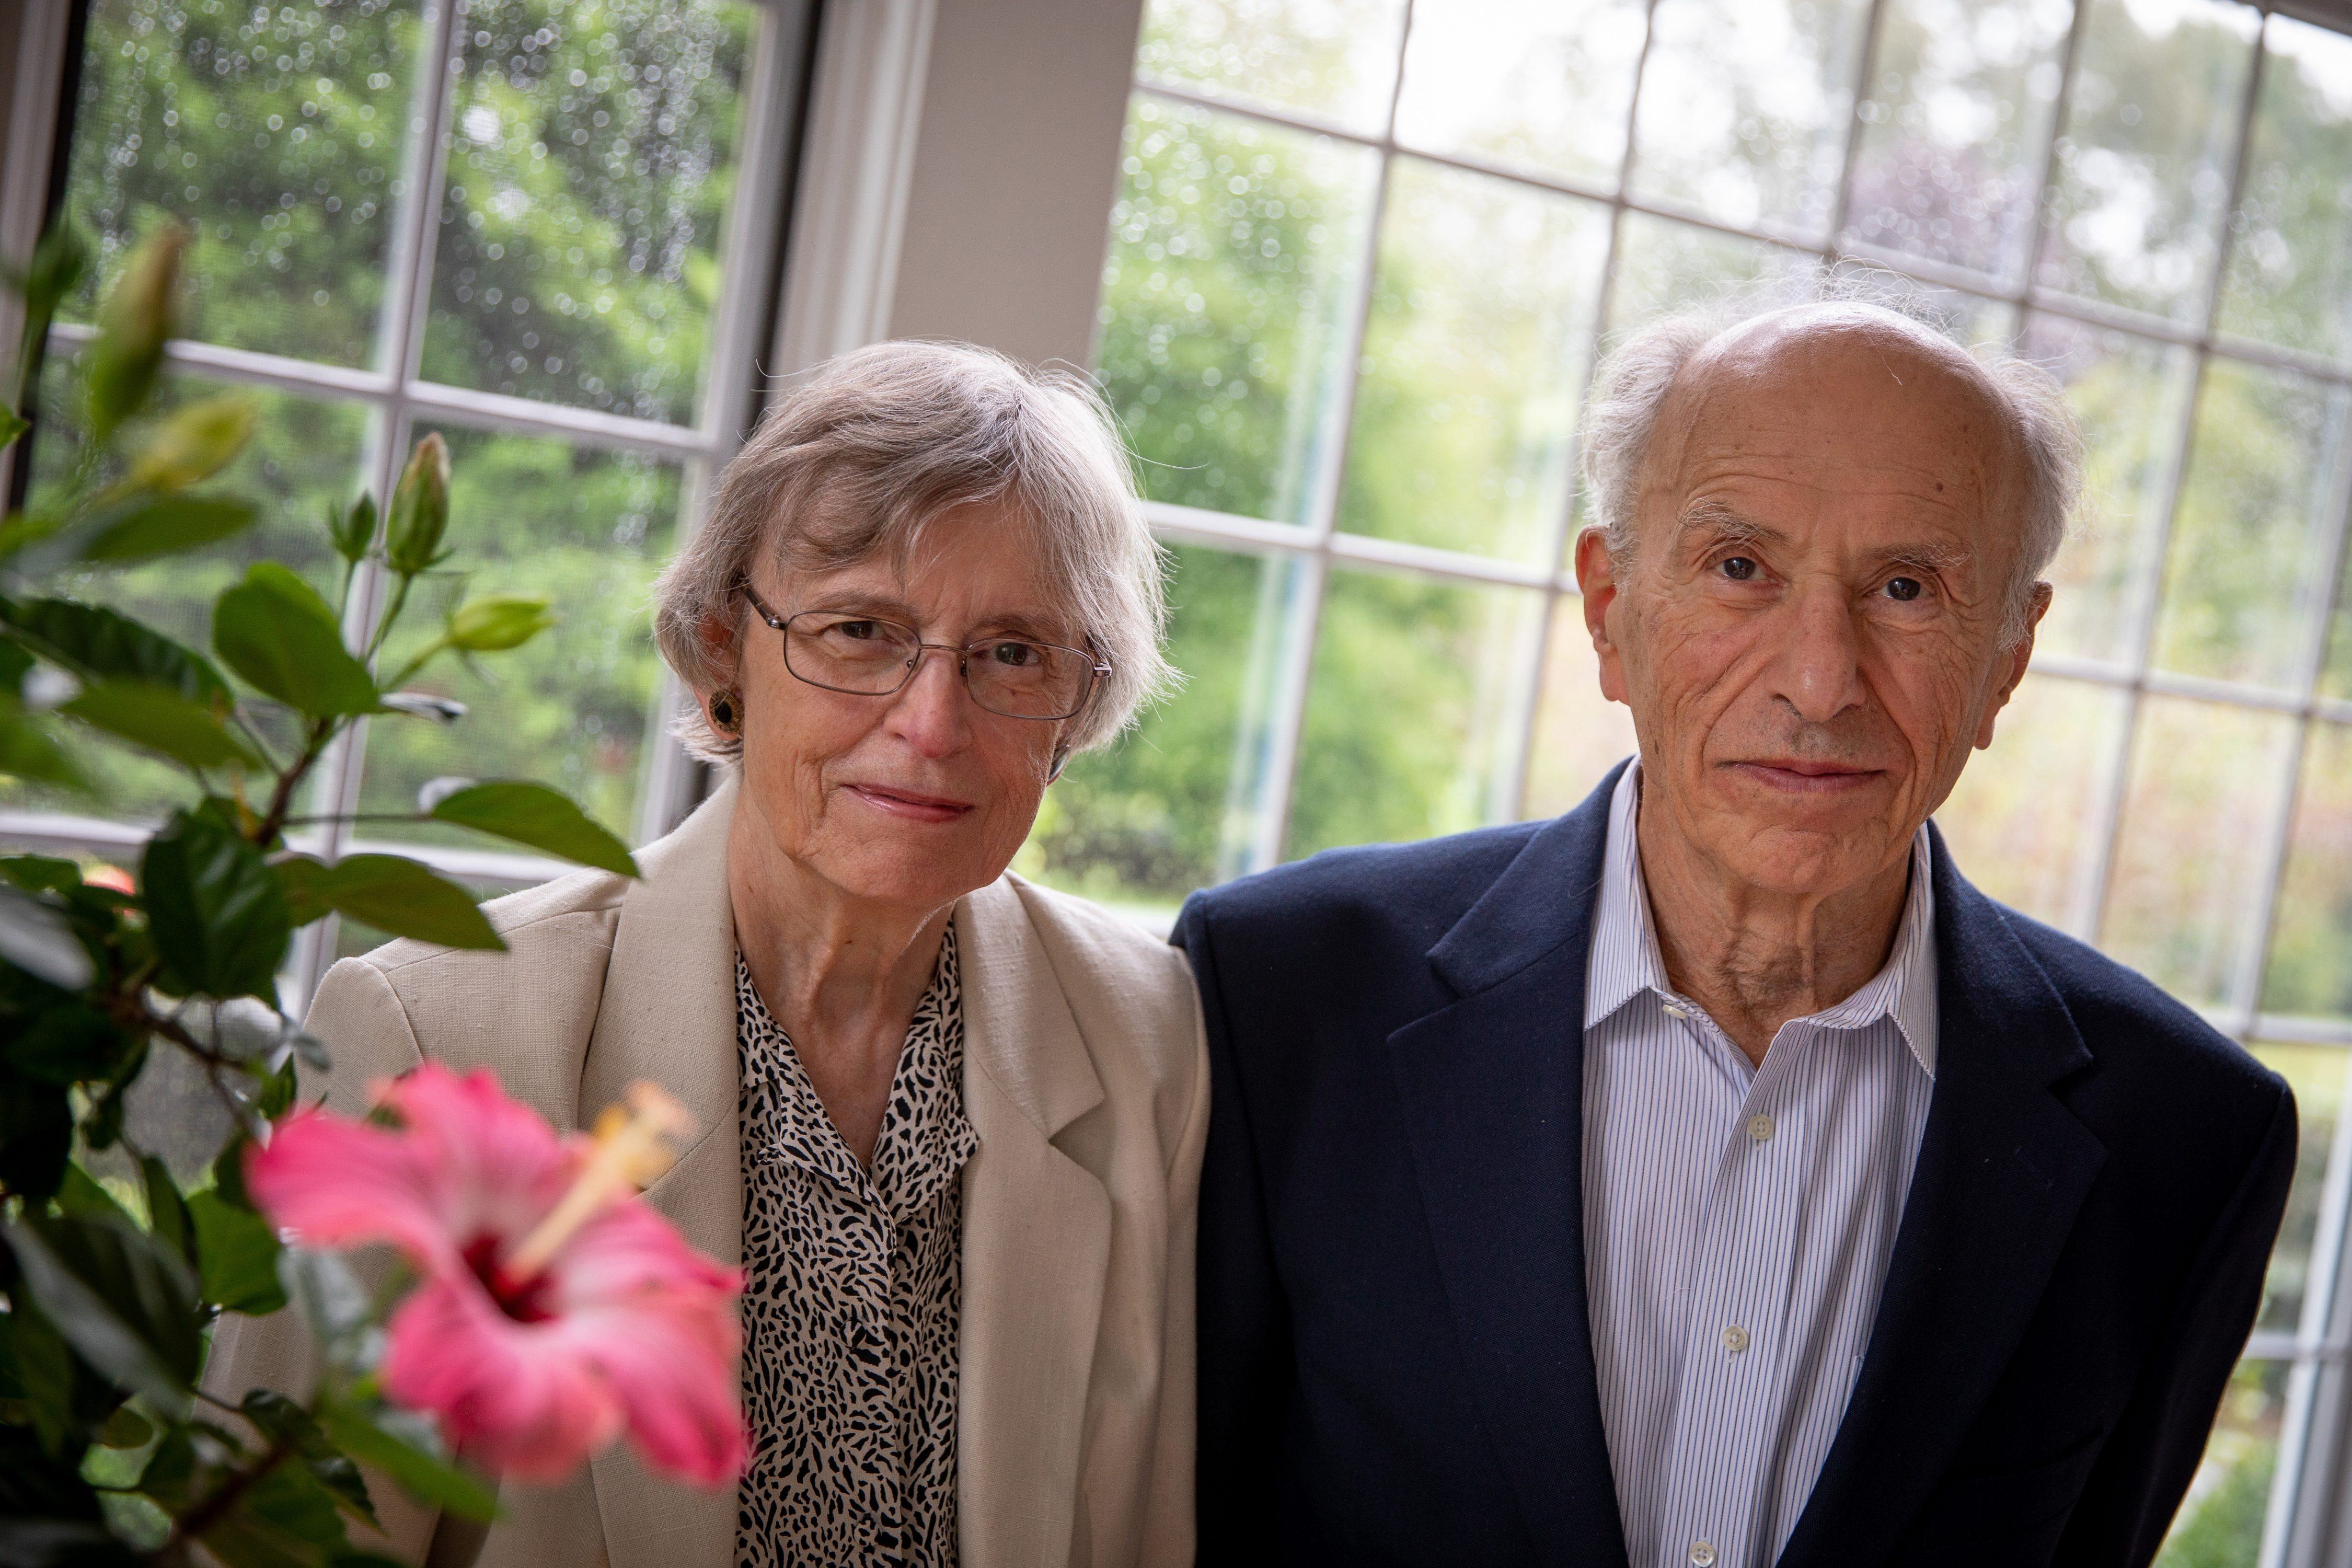 Jean Lucas-Lenard and John Lenard at home in Mansfield. (G.J. McCarthy / UConn Foundation)